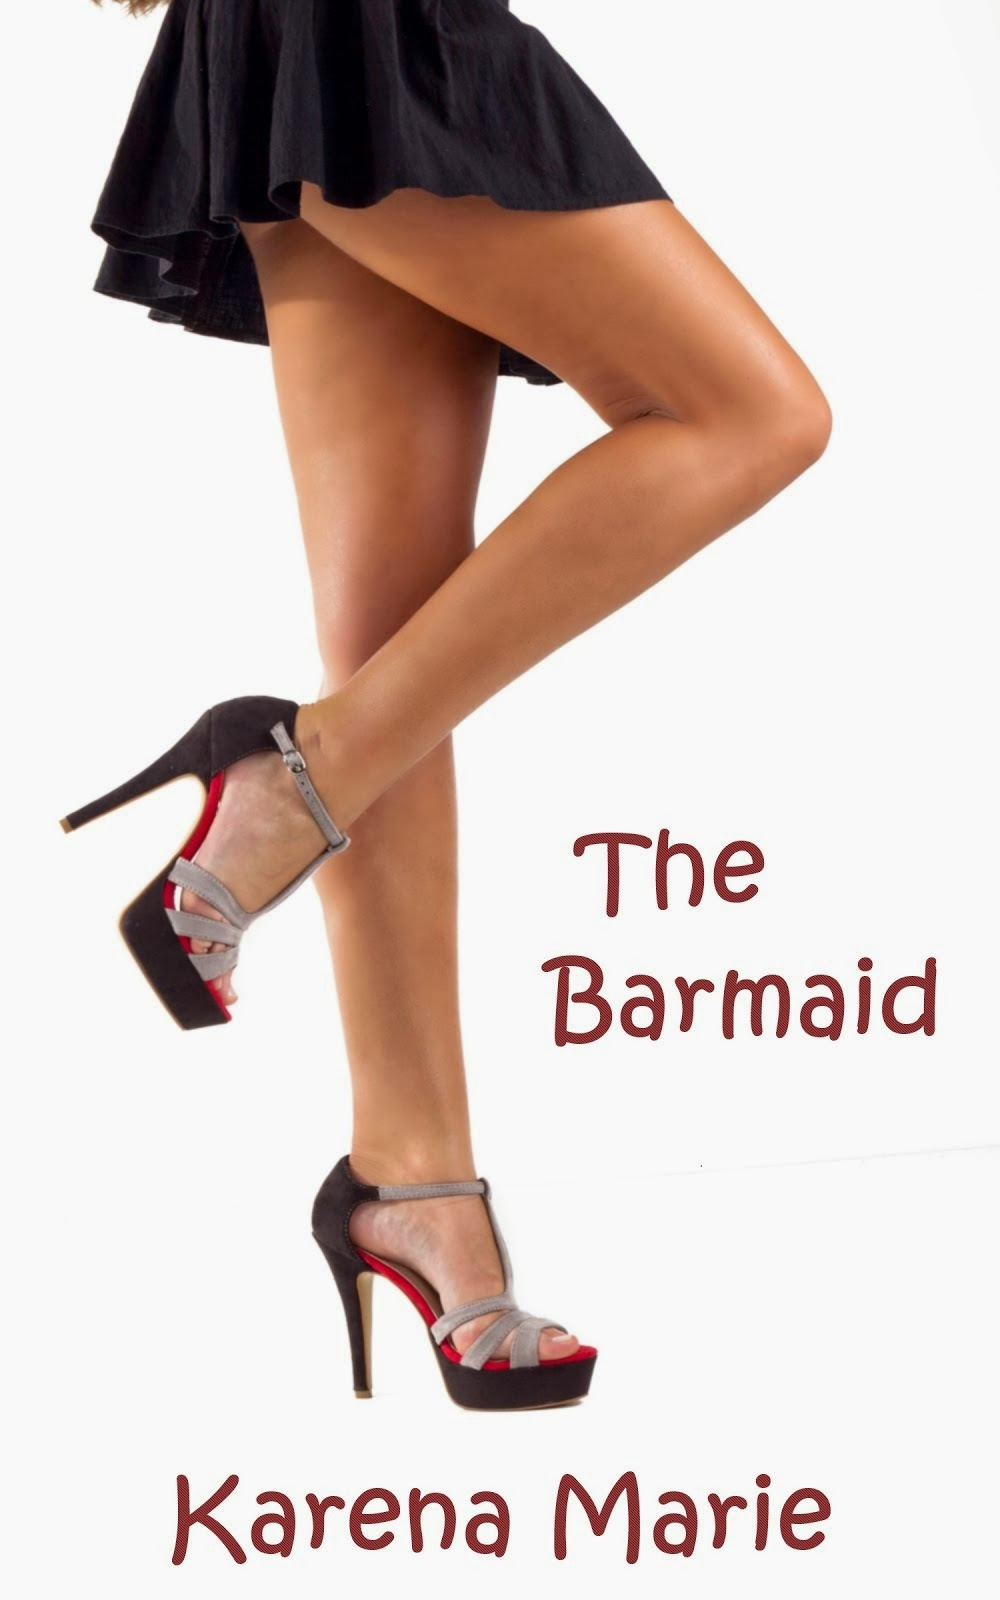 The Barmaid